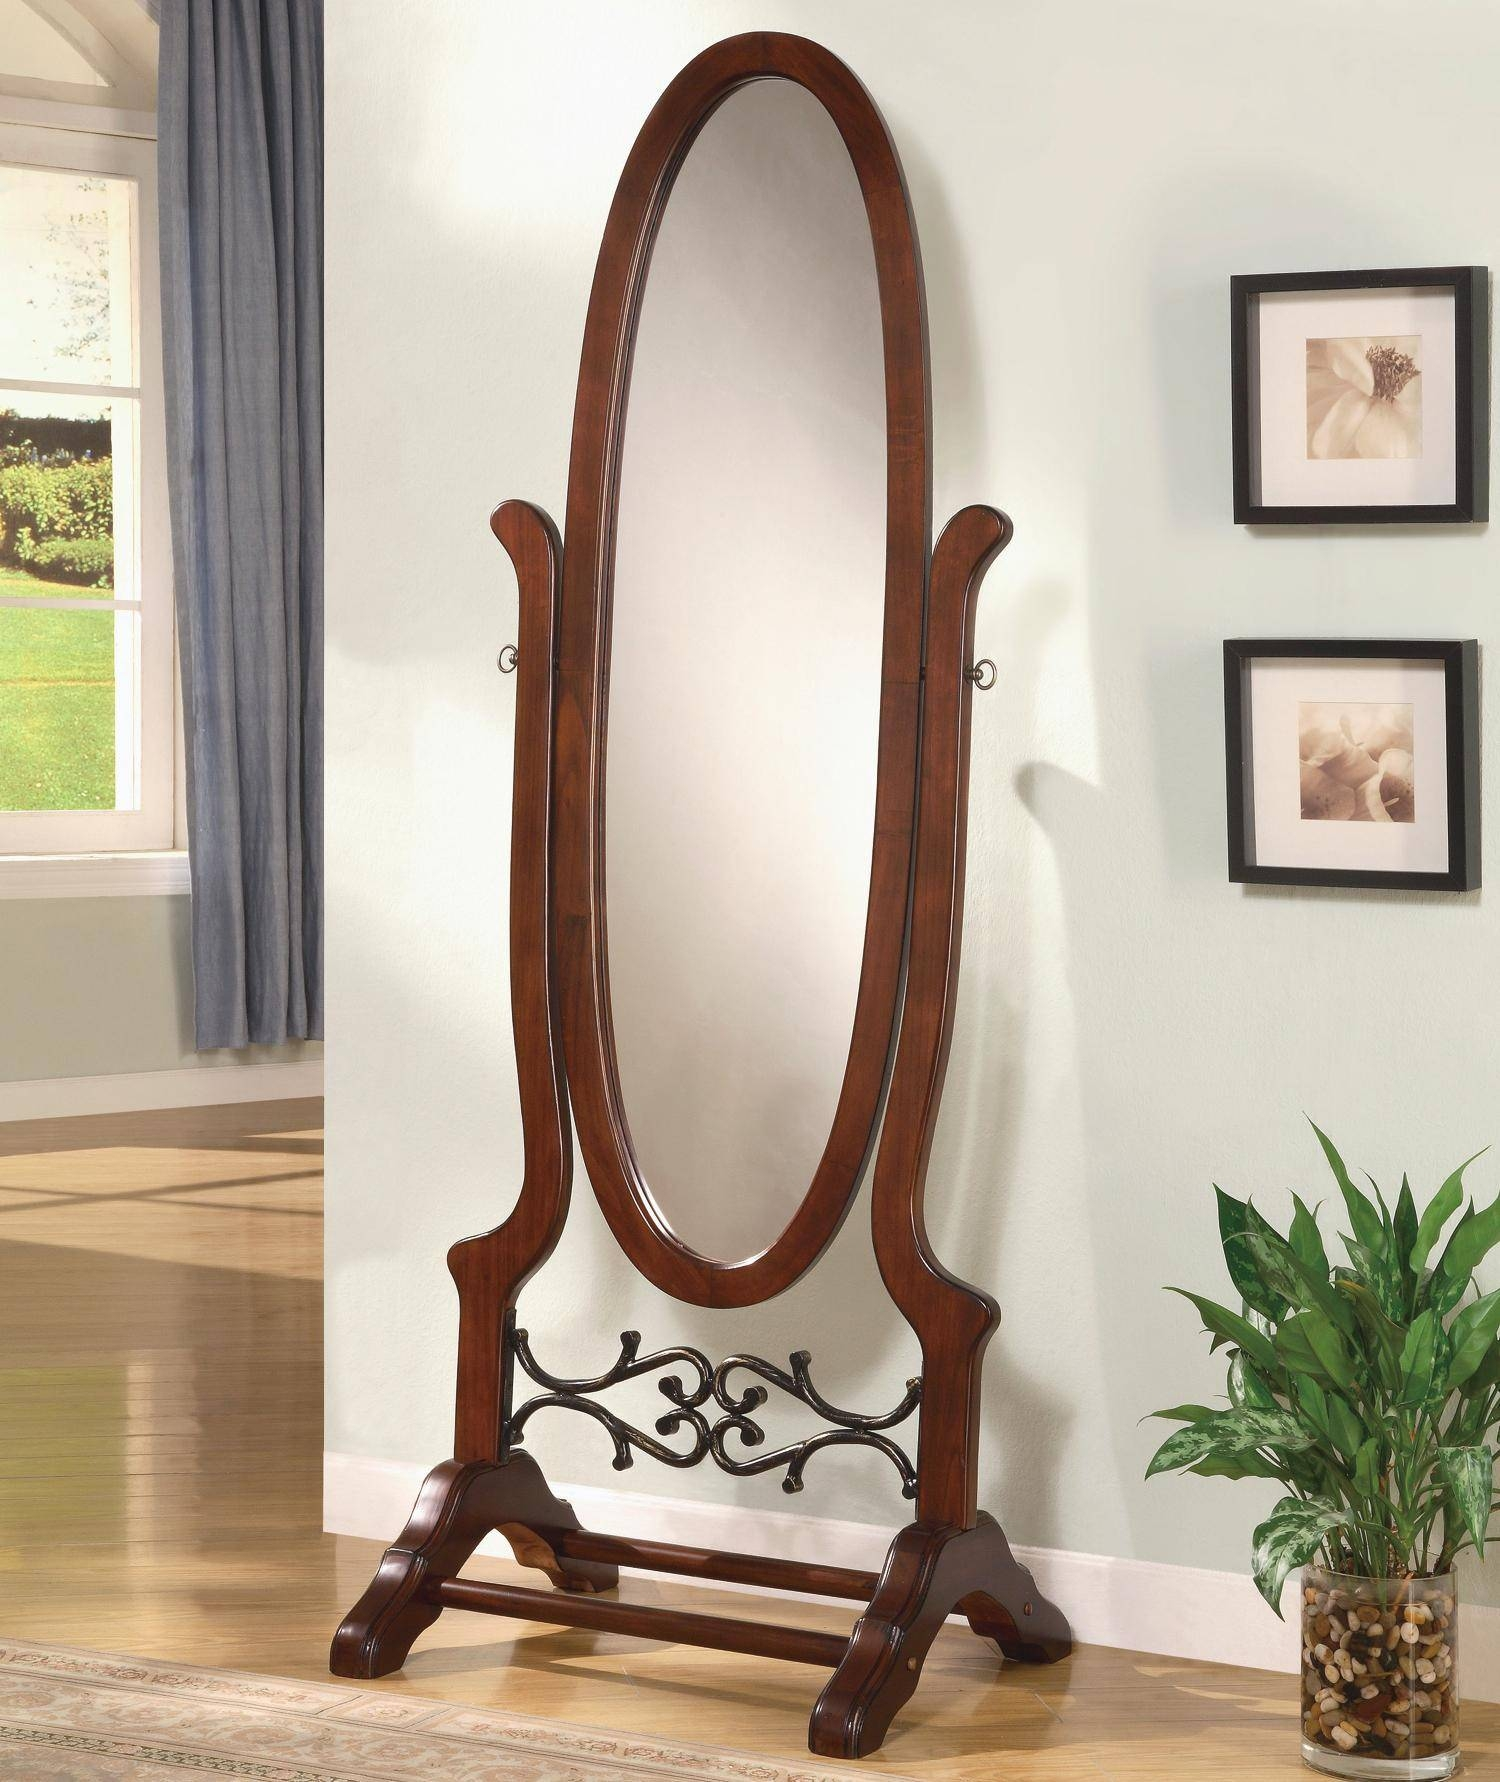 Furniture: Charming Cheval Mirror Jewelry Armoire Ideas intended for Full Length Stand Alone Mirrors (Image 4 of 15)